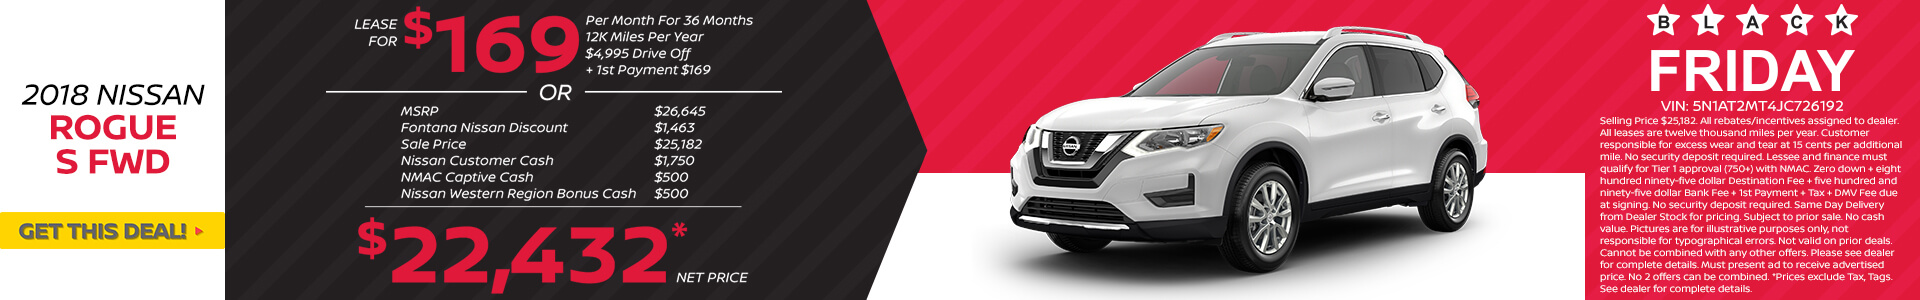 Nissan Rogue $169 Lease or $22,432 Purchase